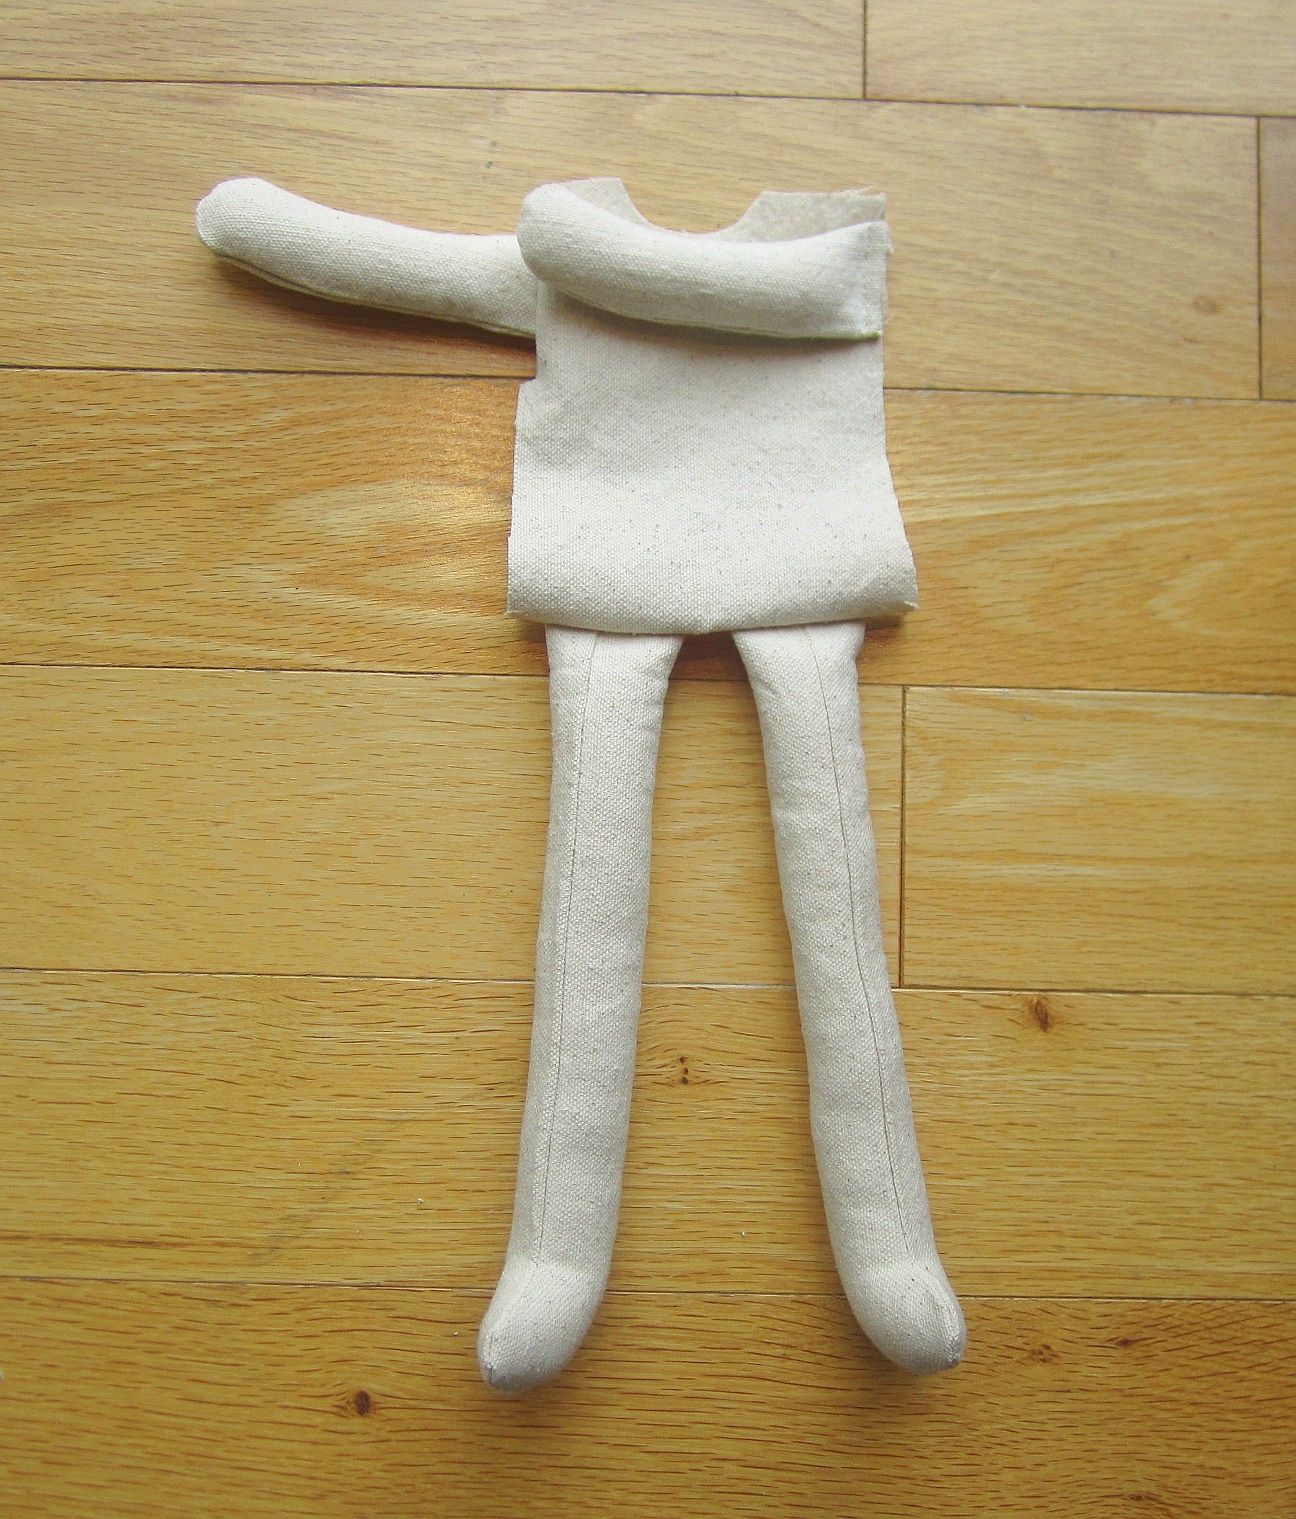 Rag Doll Free Sewing Pattern And Instructions – Amie Scott - Free Printable Cloth Doll Sewing Patterns